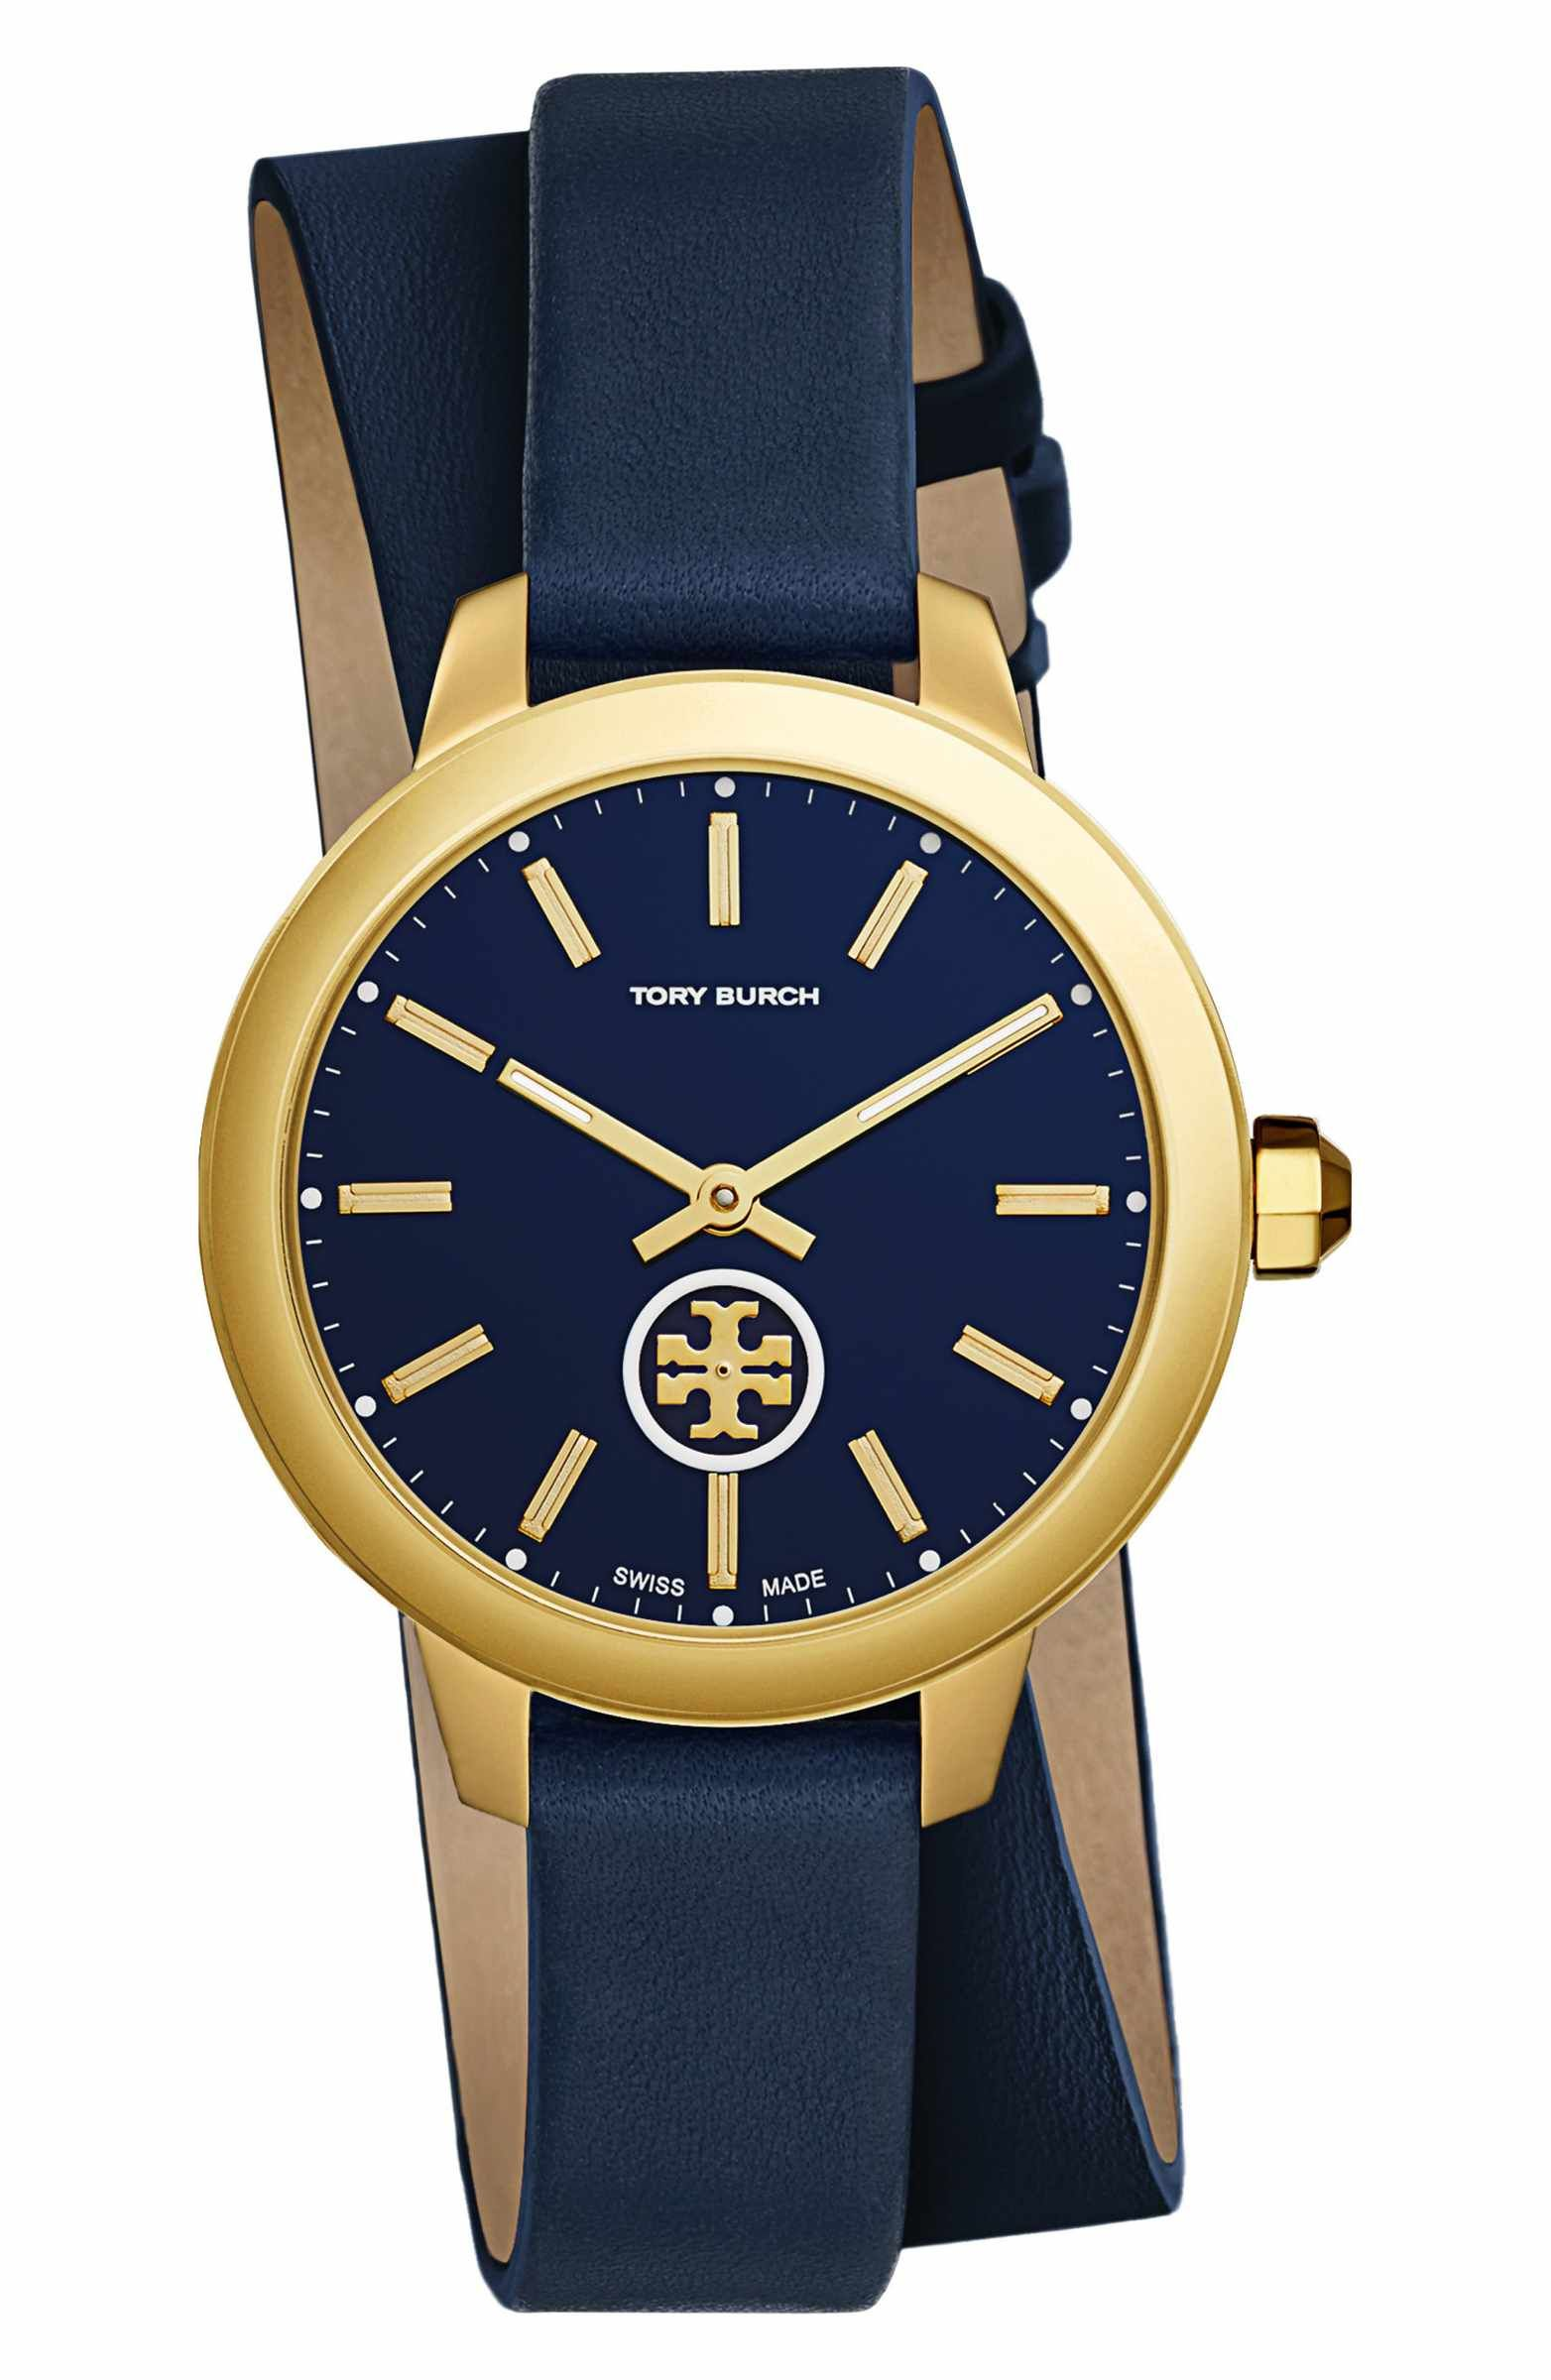 9ec758b07 Main Image - Tory Burch Collins Double Wrap Leather Strap Watch, 38mm